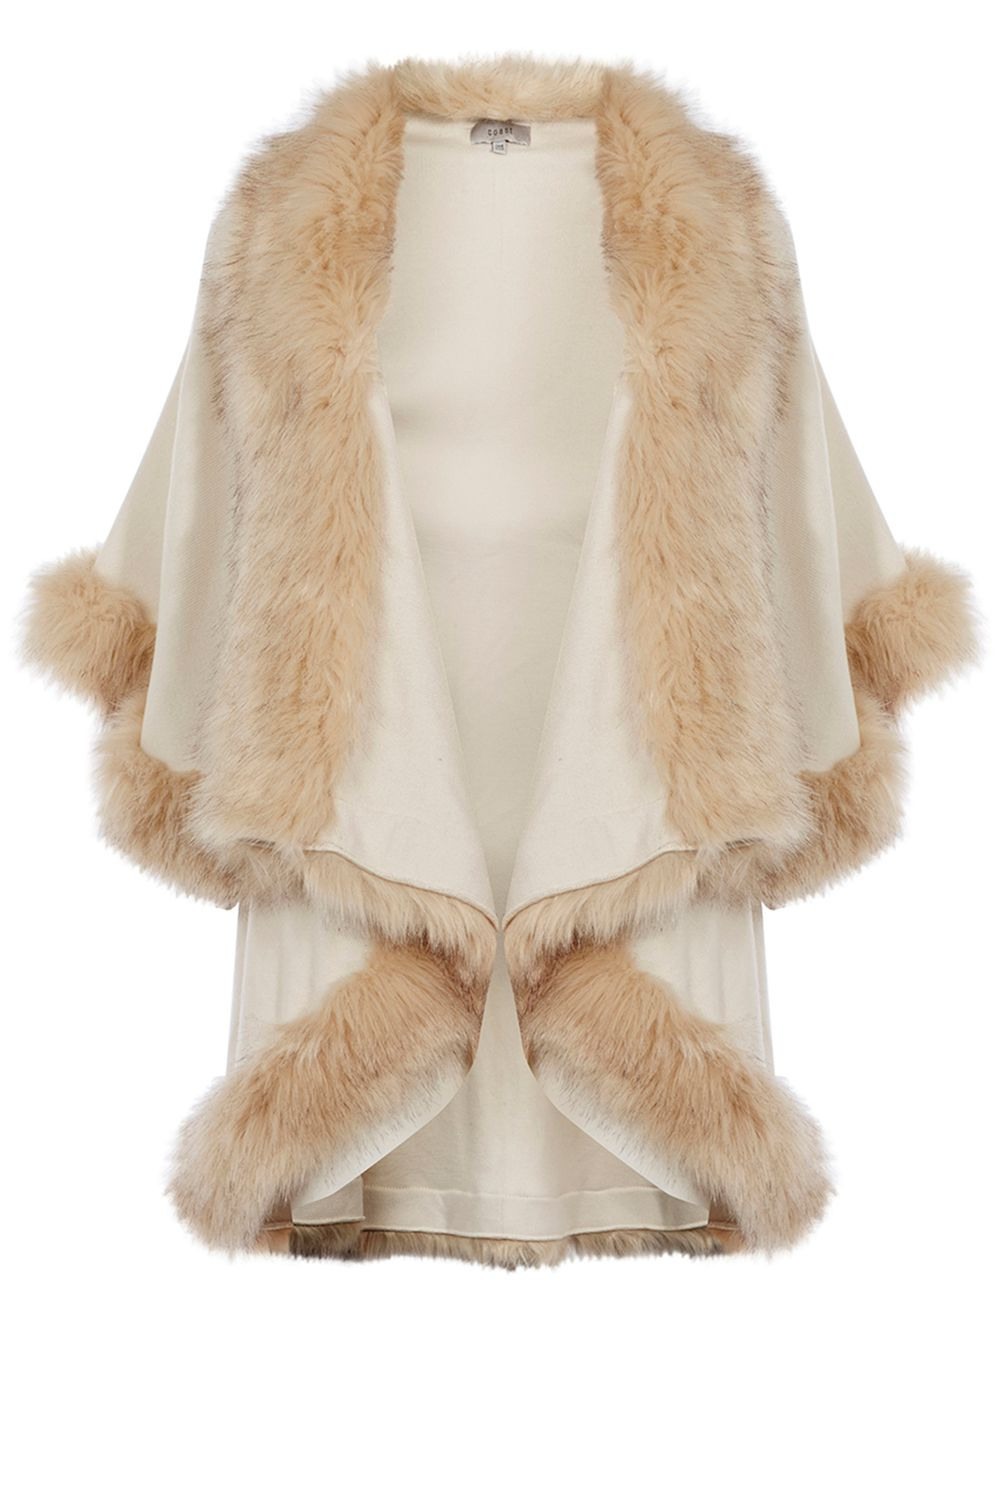 Coast Kate Faux Fur Cape, White